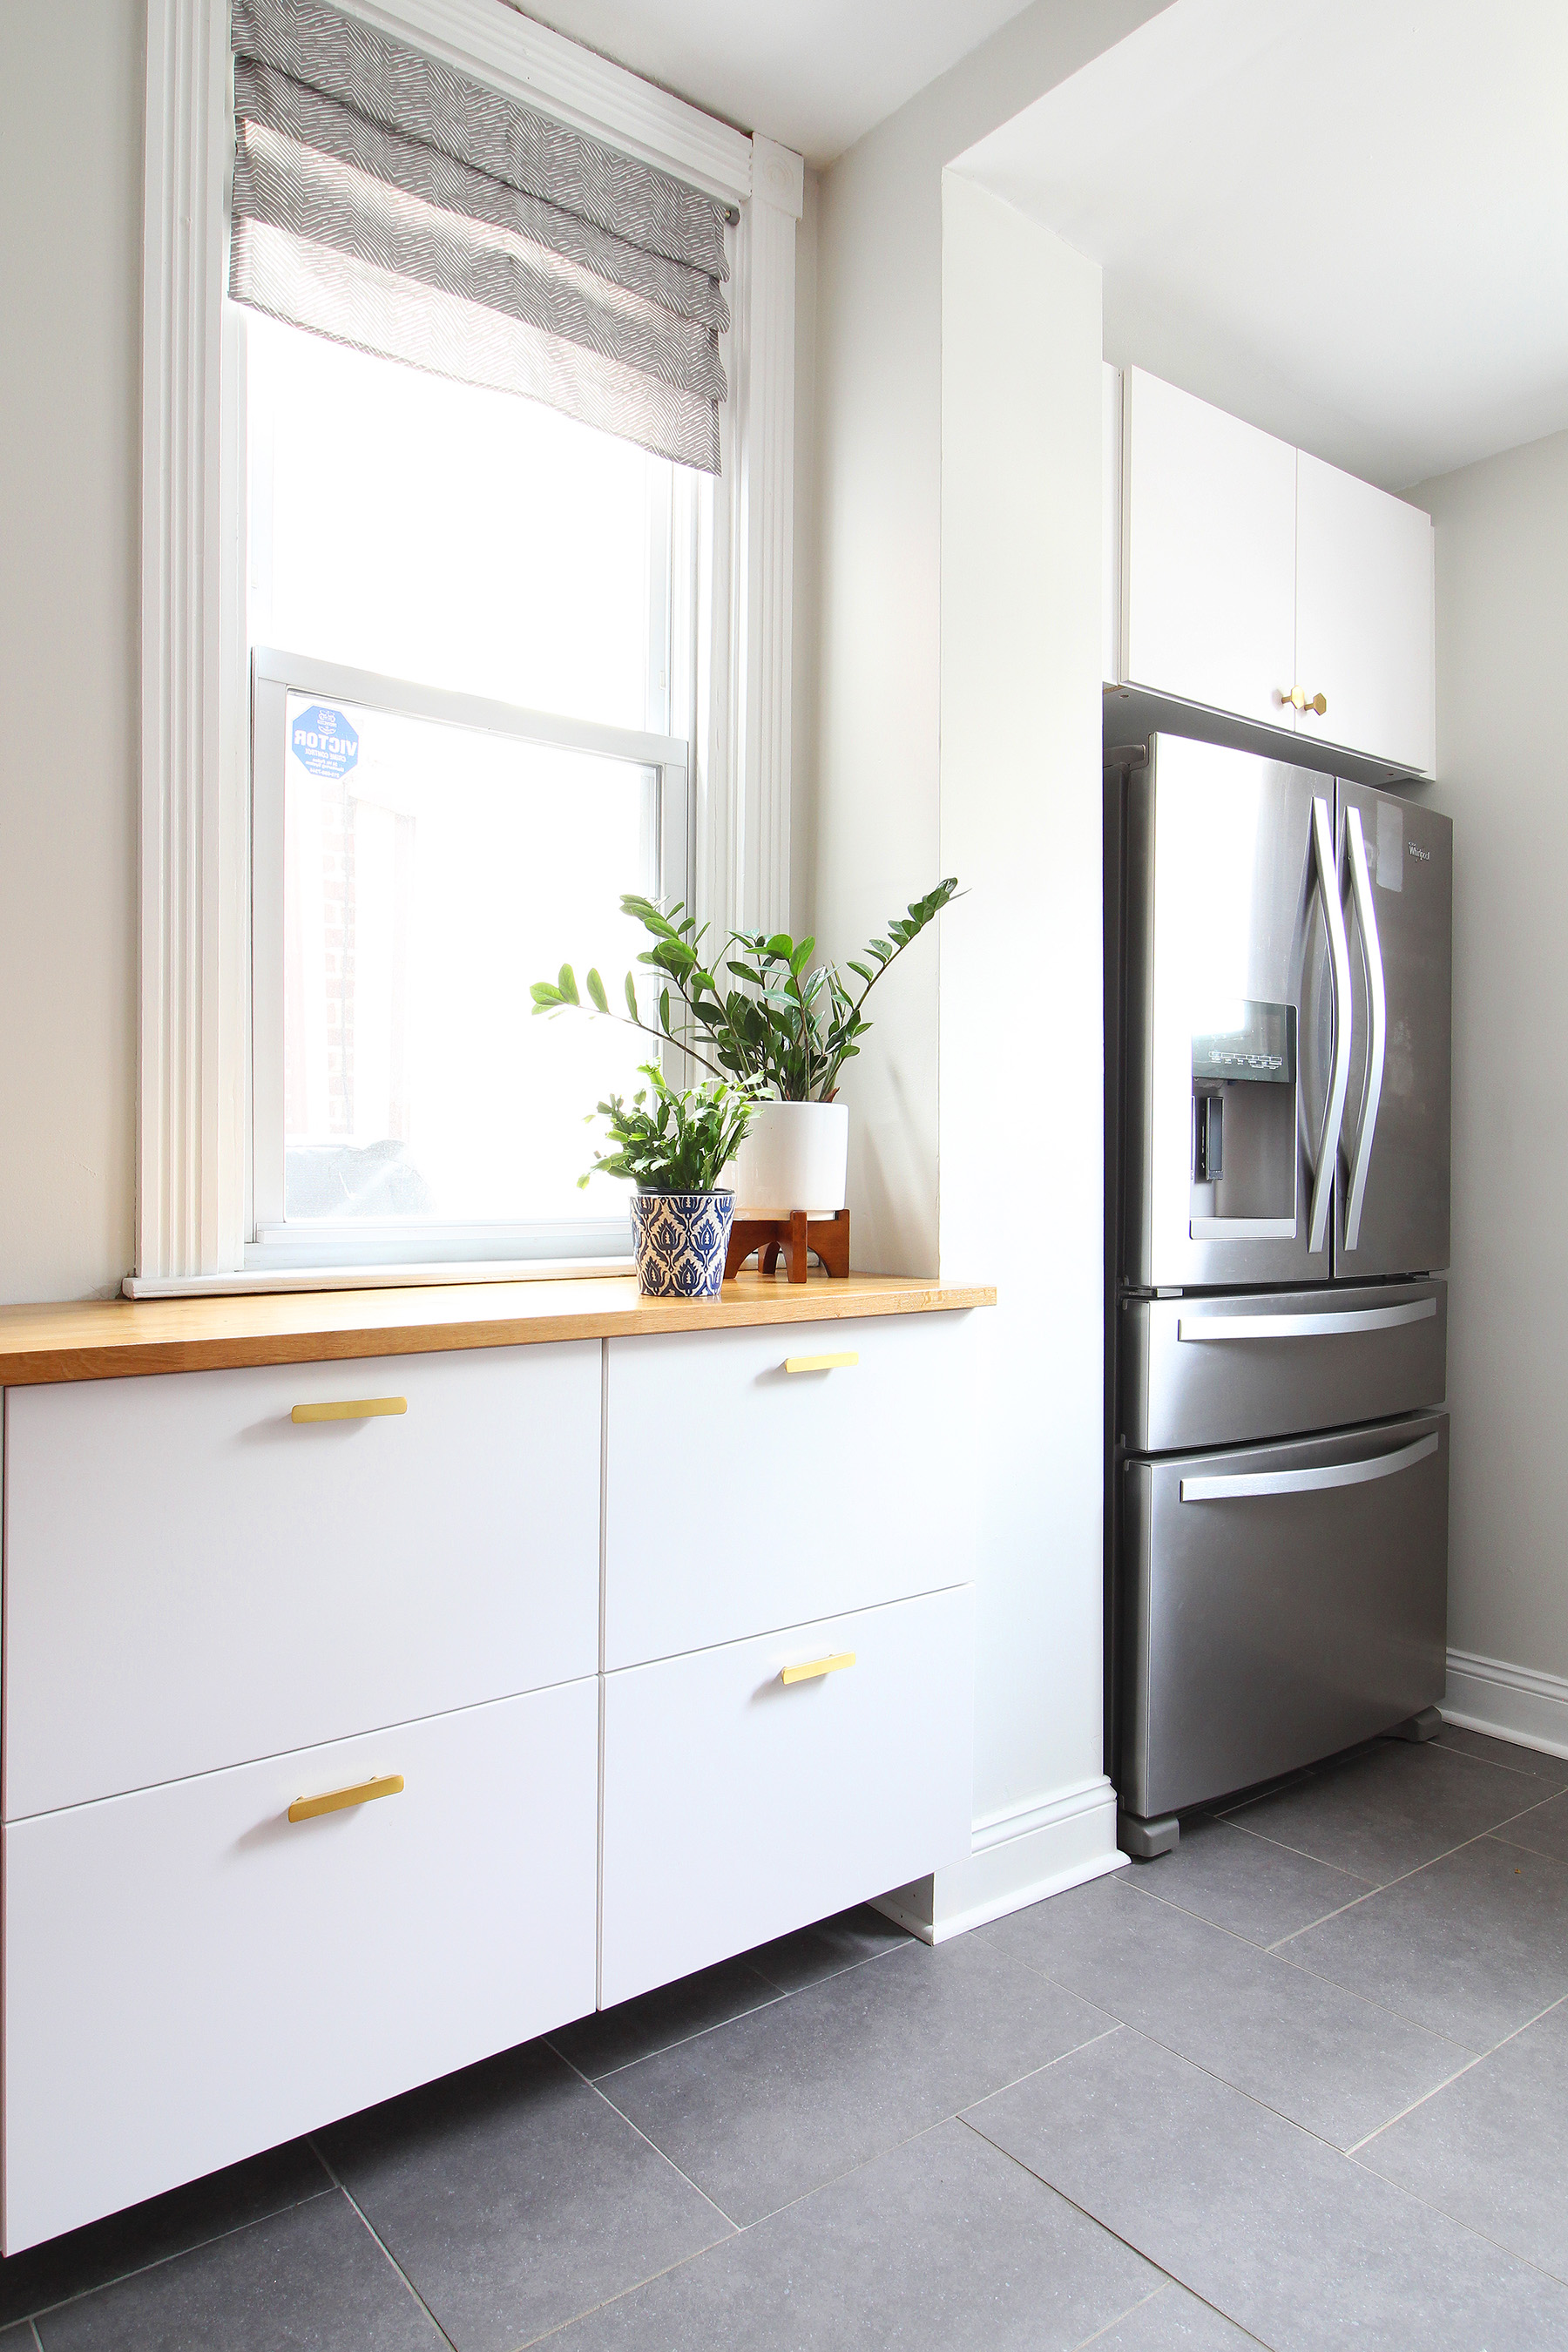 Read my review of our modern white kitchen renovation using IKEA cabinets, Caesarstone countertops, and gray tile floors two years after we renovated. We added radiant heat underneath our tile floors and it is the BEST thing in the winter!